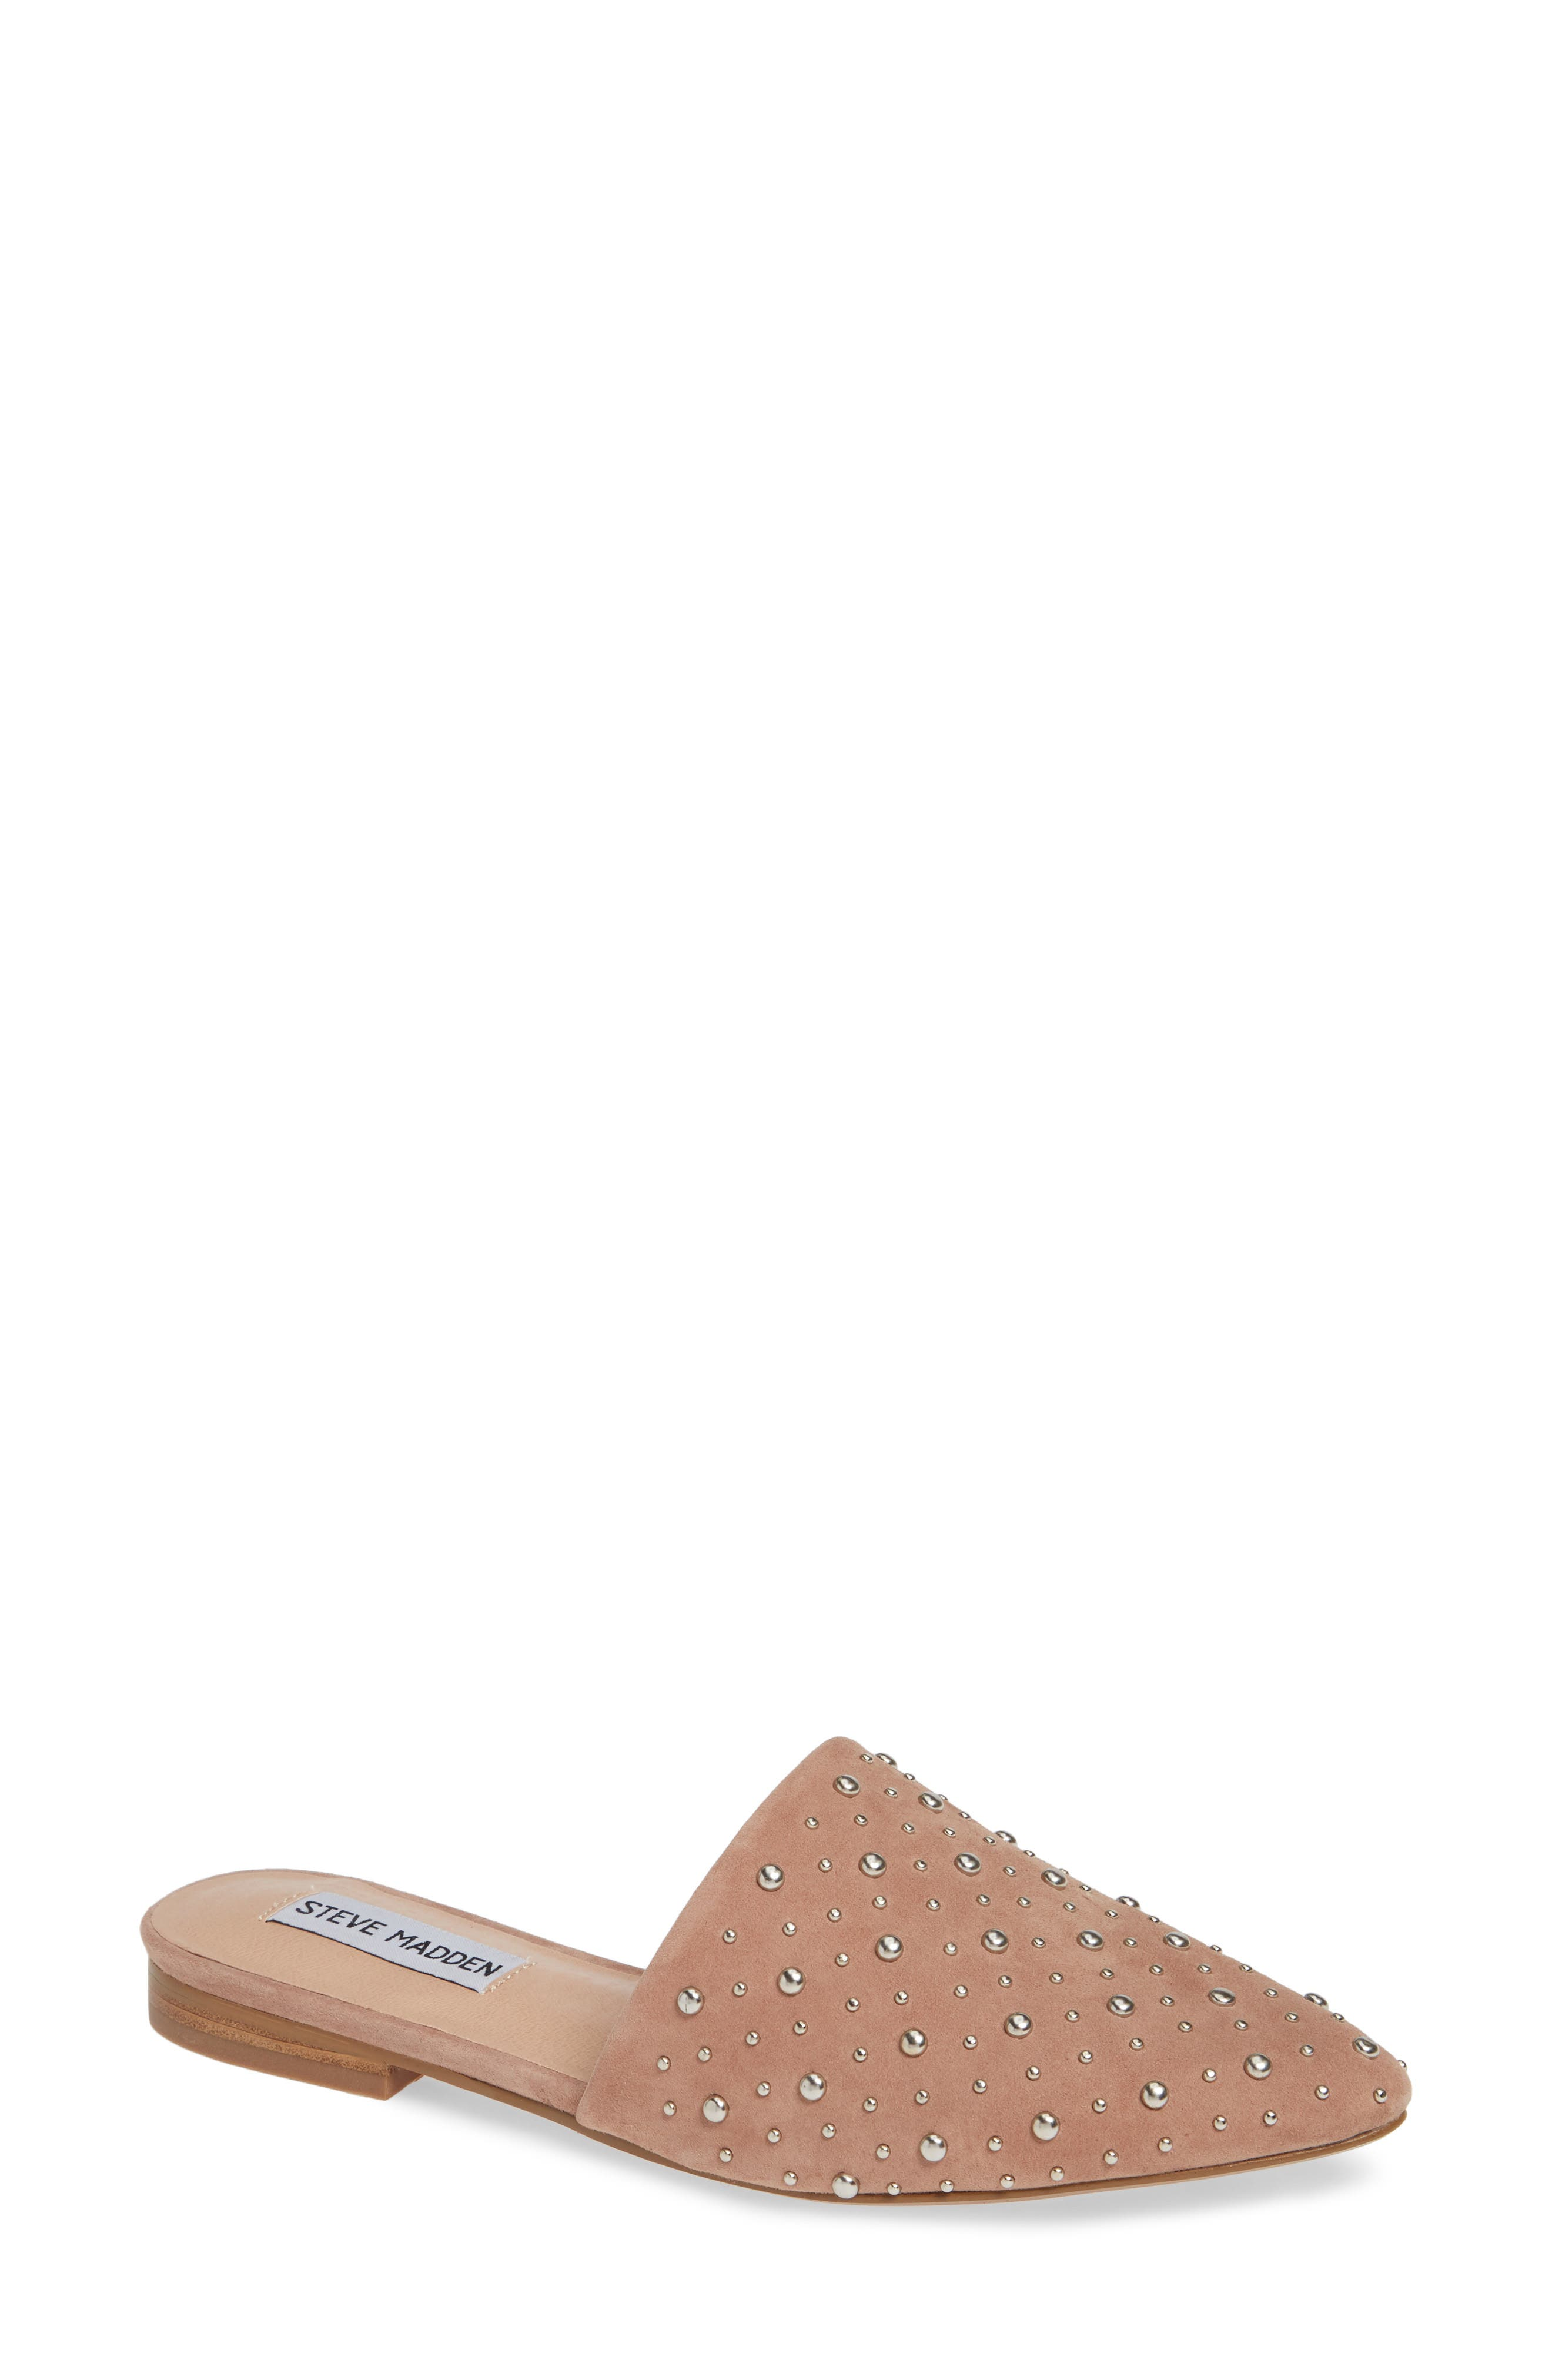 cffe19e85cb Mules Steve Madden Shoes for Women